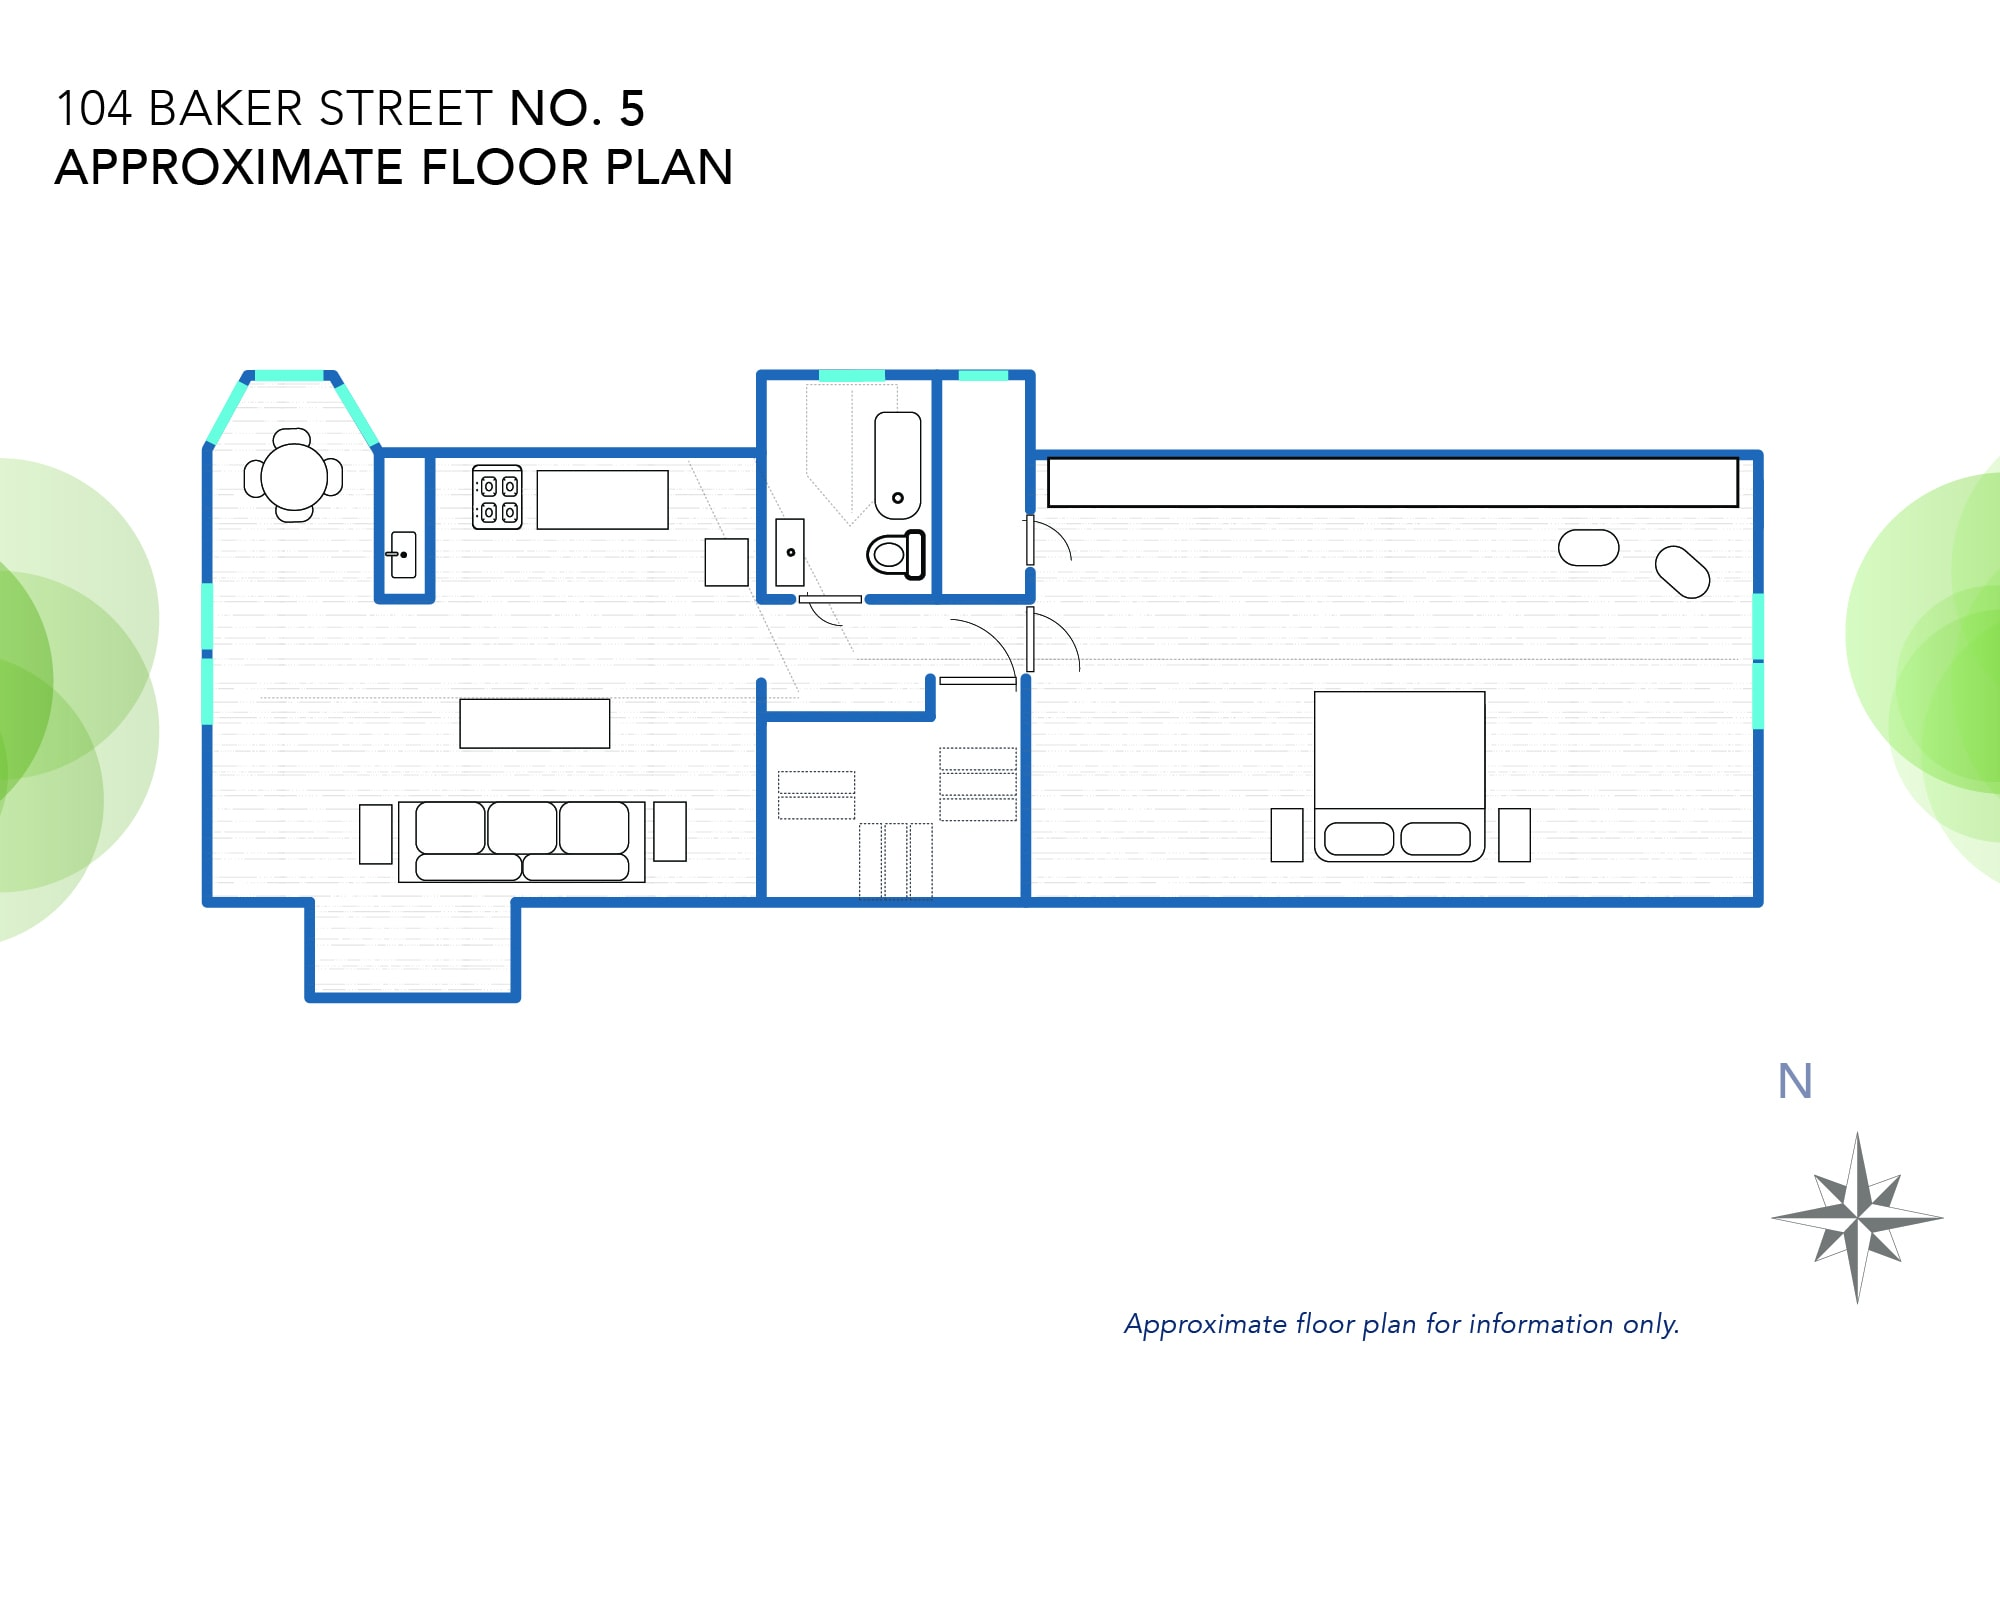 104 Baker's Floor Plan (approximately)